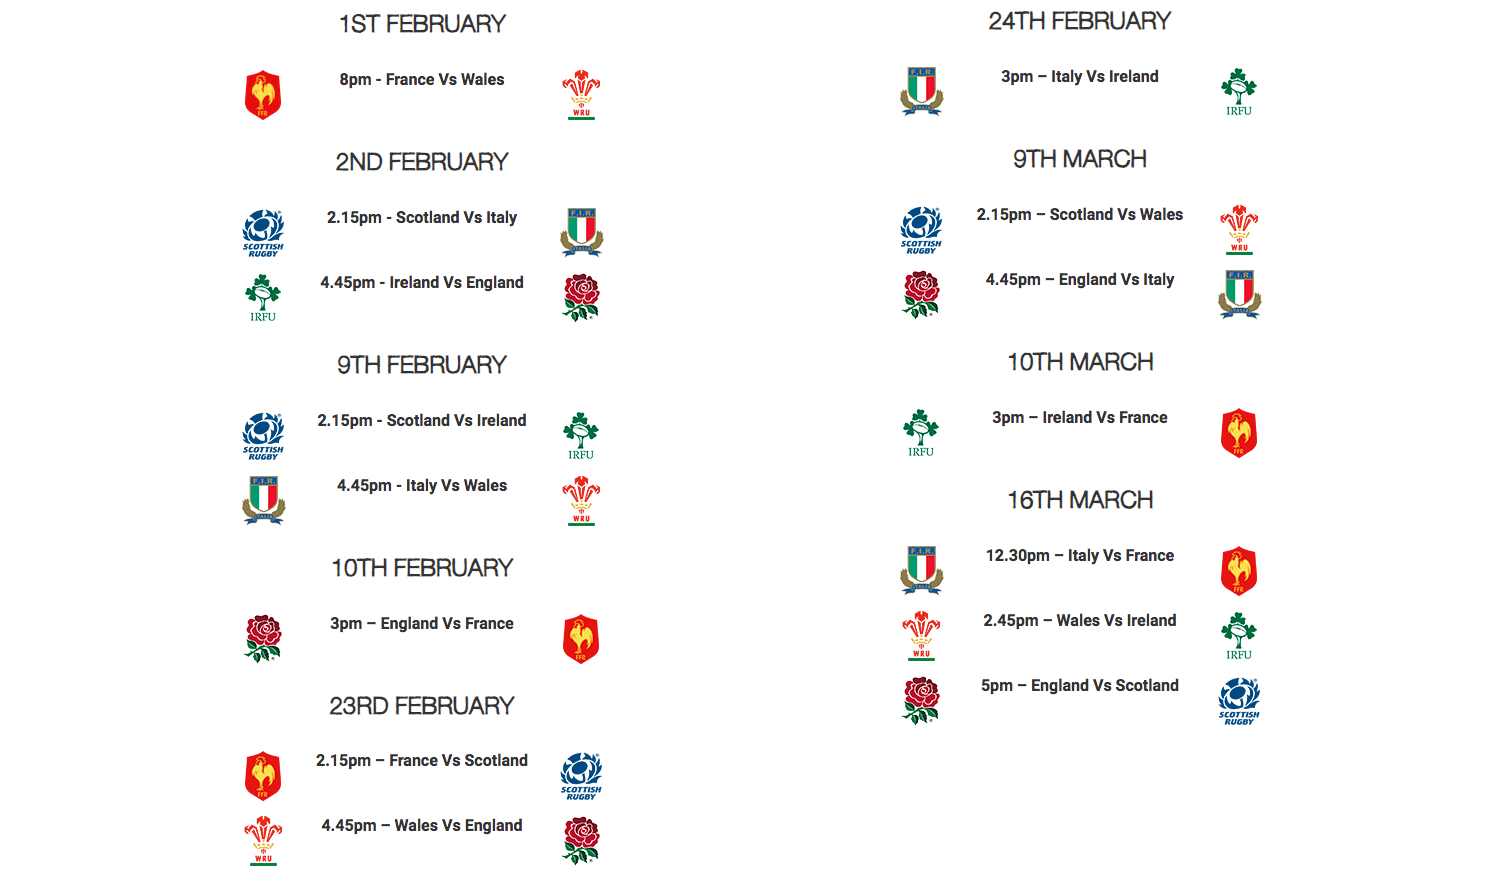 Six nations fixtures from the 1st of February till 23rd of February